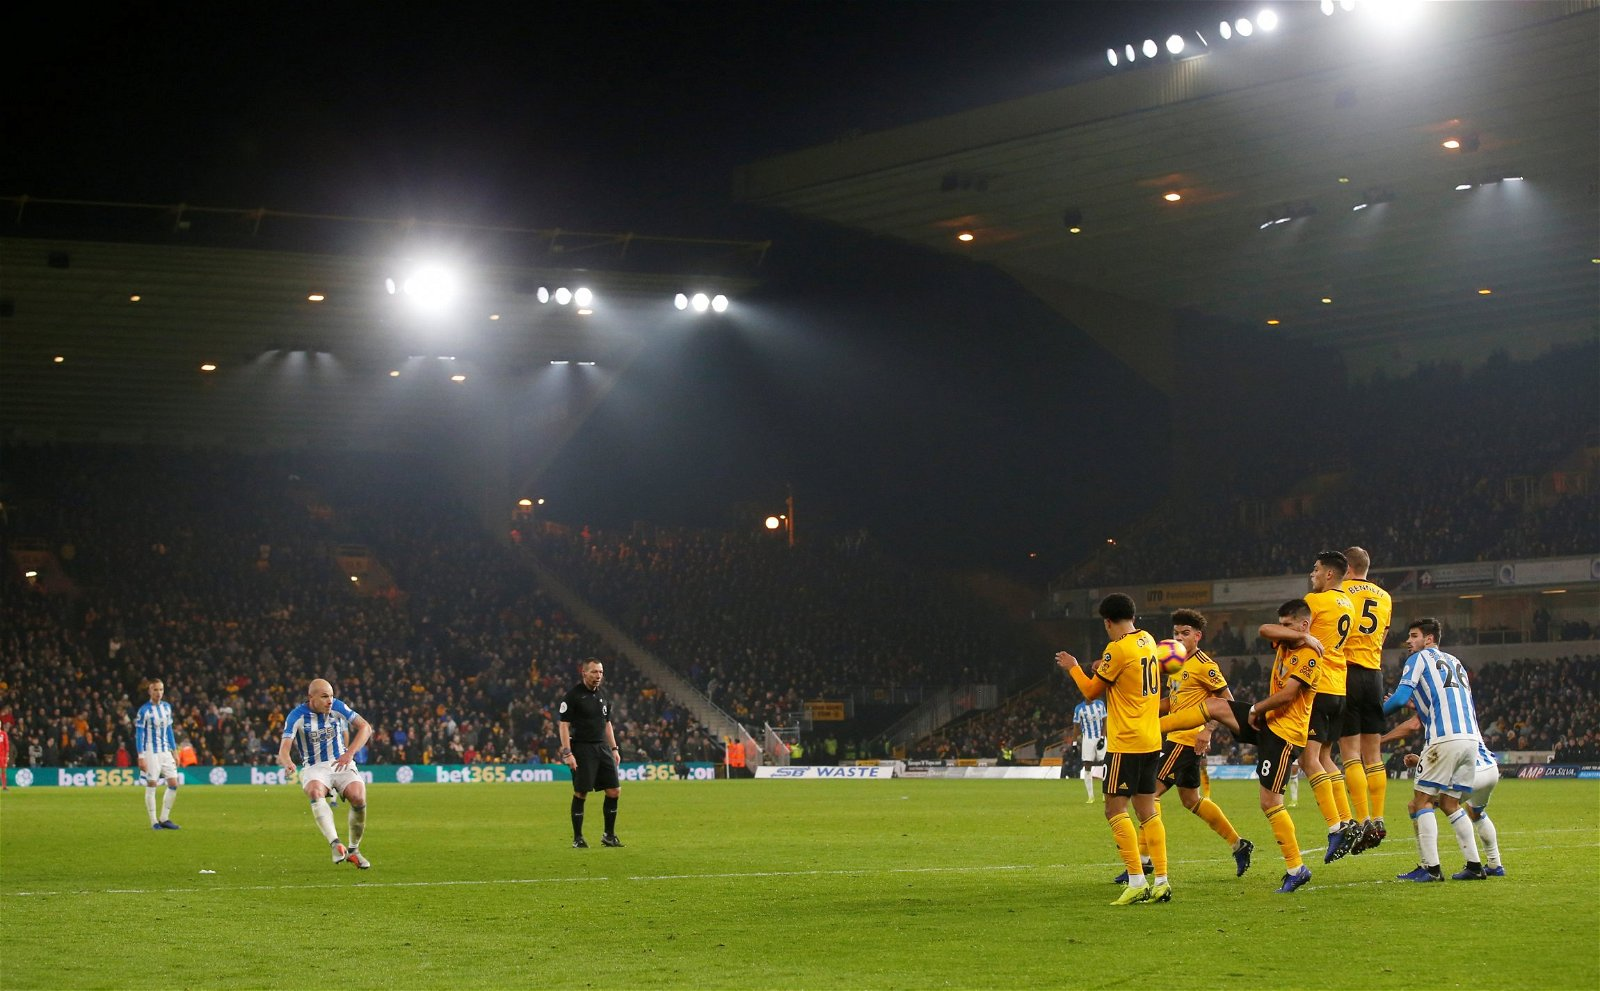 Aaron Mooy free kick vs Wolves - [Image] - The photo that proves three-goal Wolves target could rival Ruben Neves next season